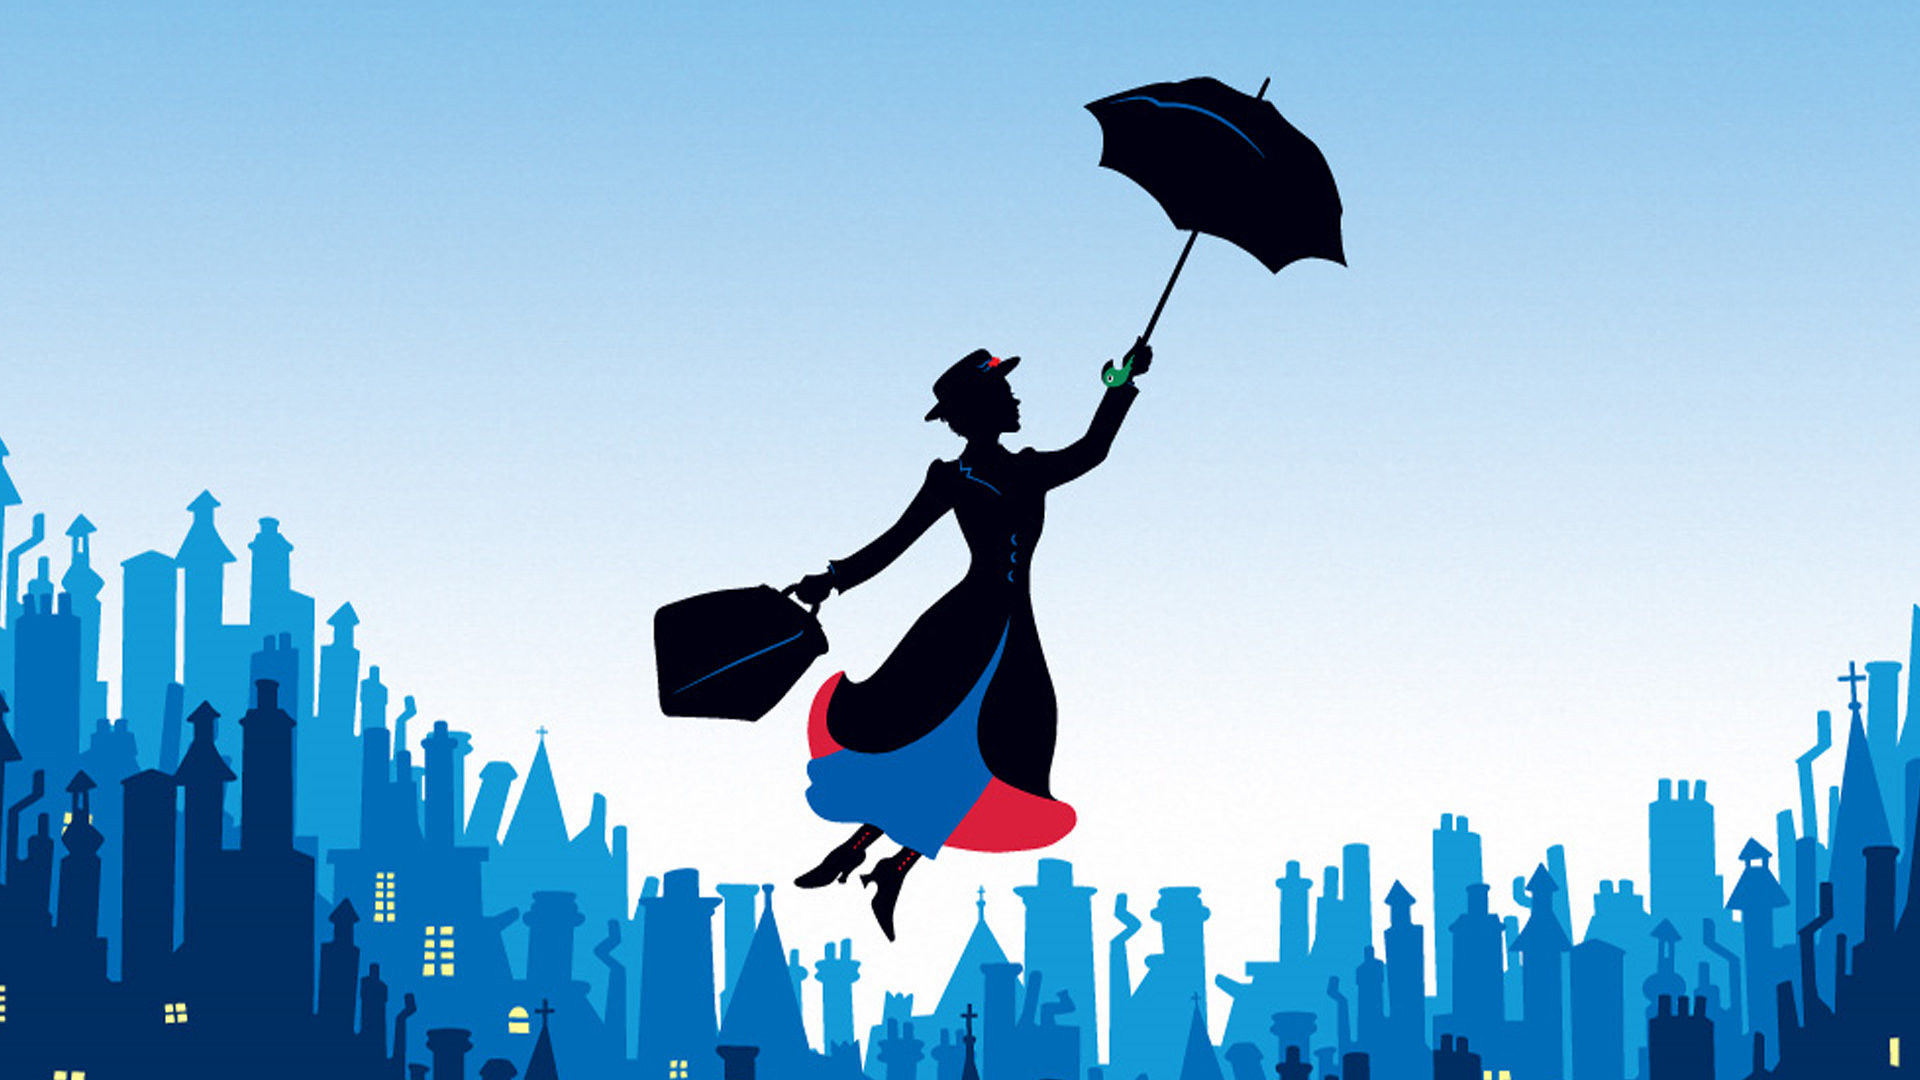 mary poppins 2 movie � mary poppins returns teaser trailer